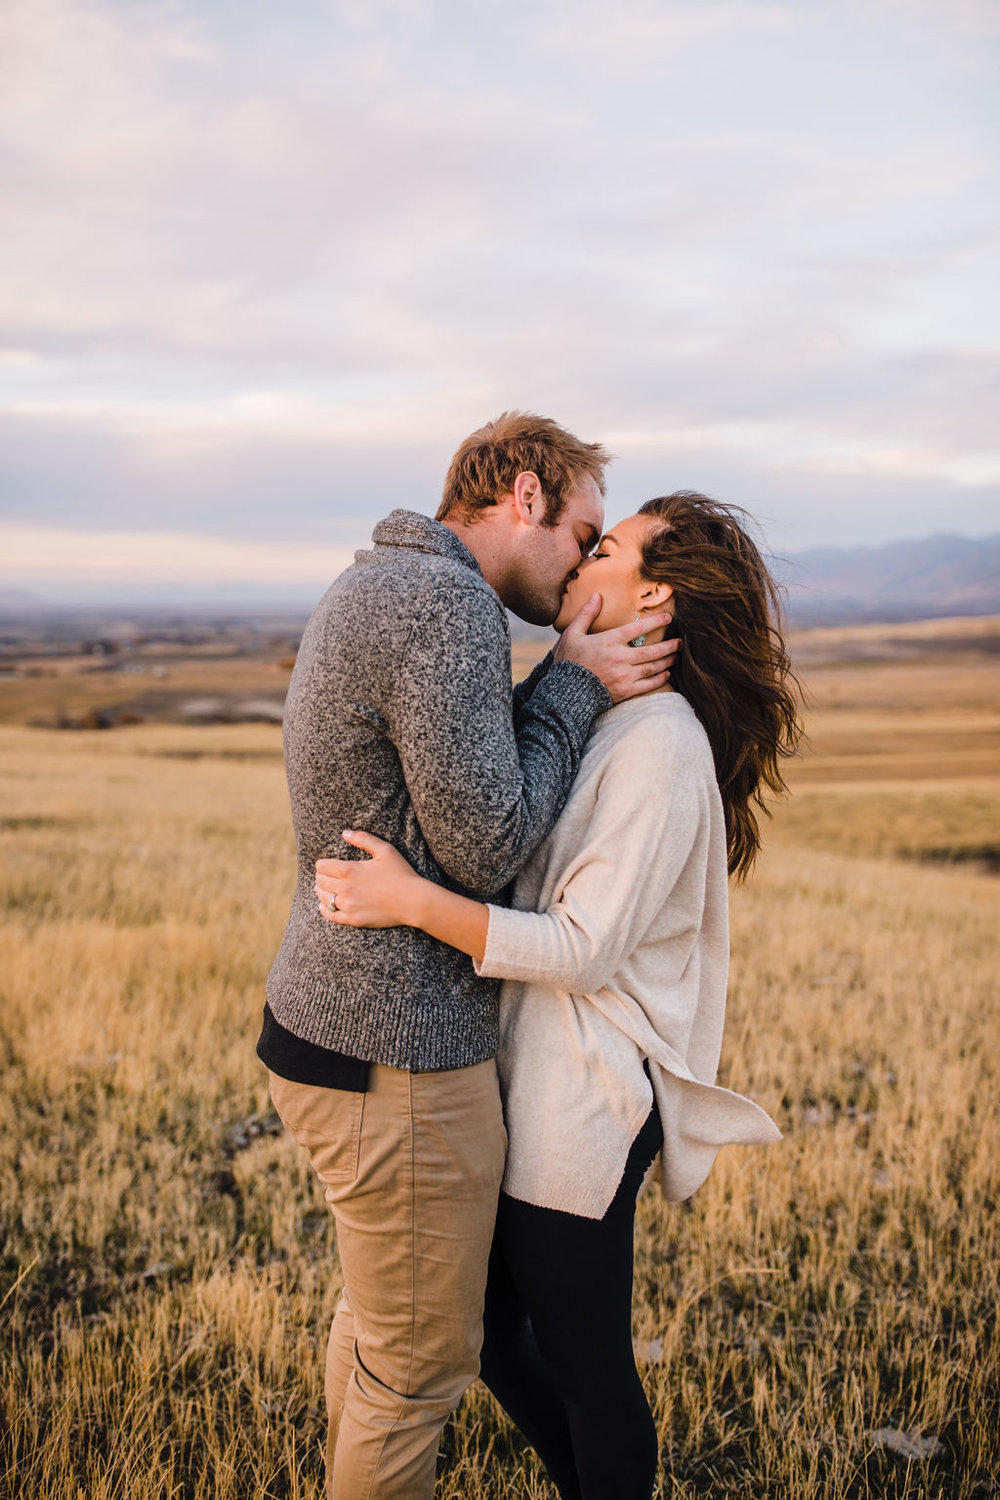 windy engagement photos couple kissing romantic hugging northern utah wedding photographer